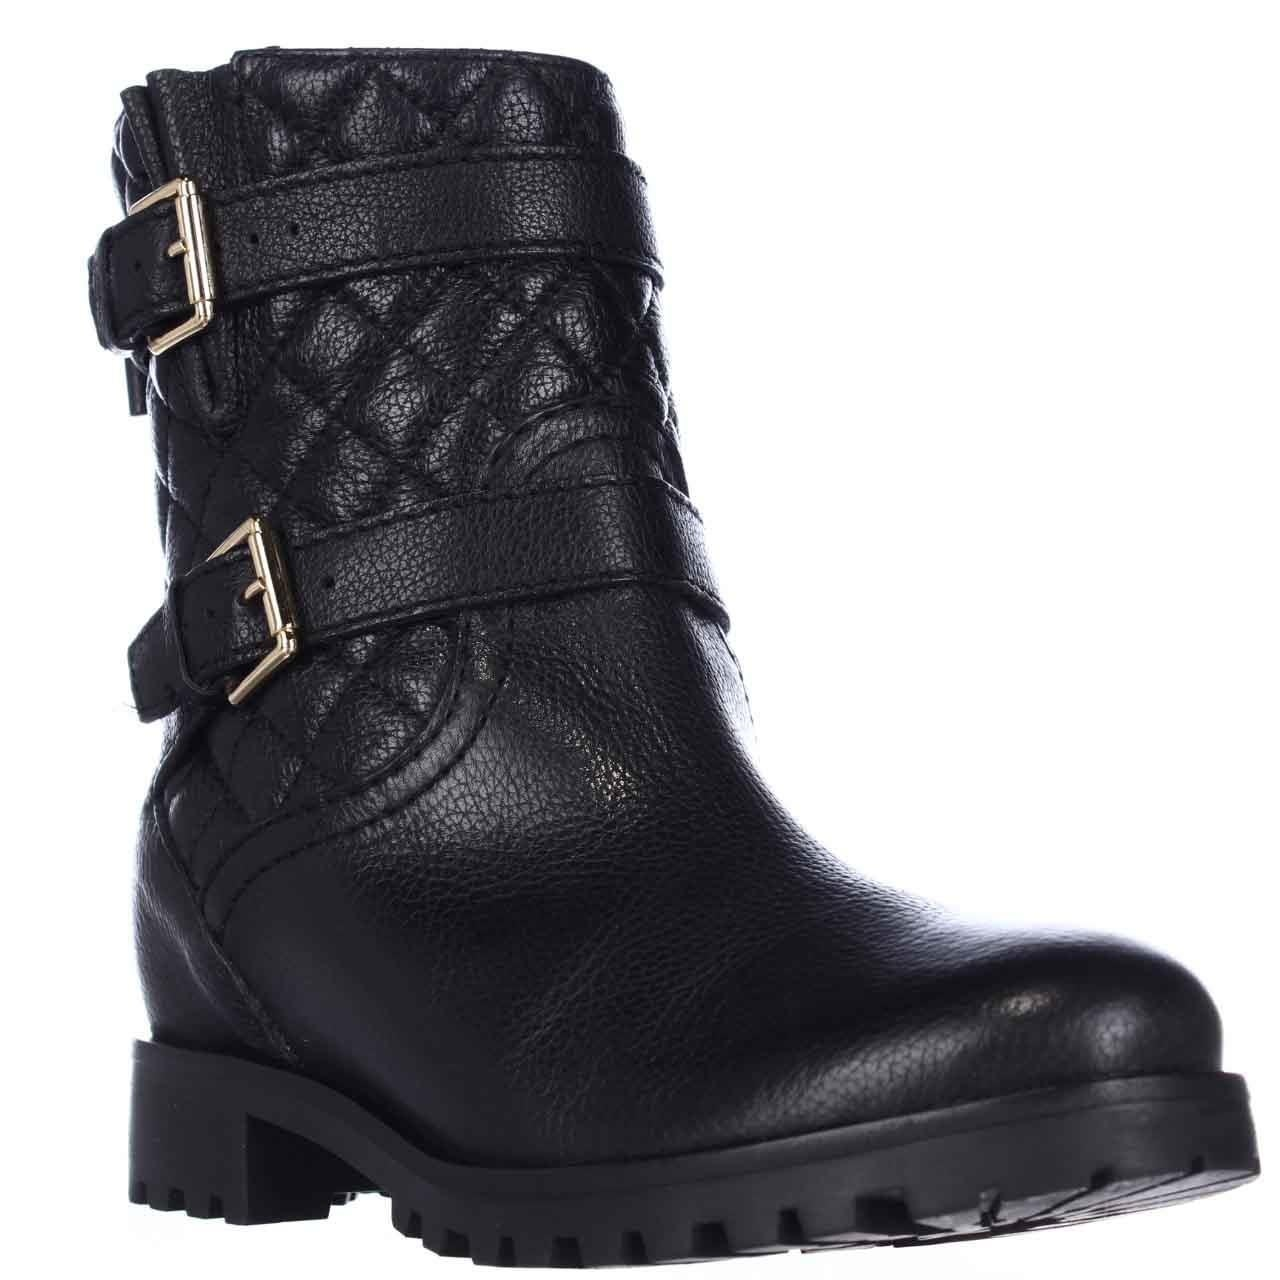 de076bdb6bb6 Shop Kate Spade Samara Quilted Motorcycle Boots, Black - Free Shipping  Today - Overstock - 14032824